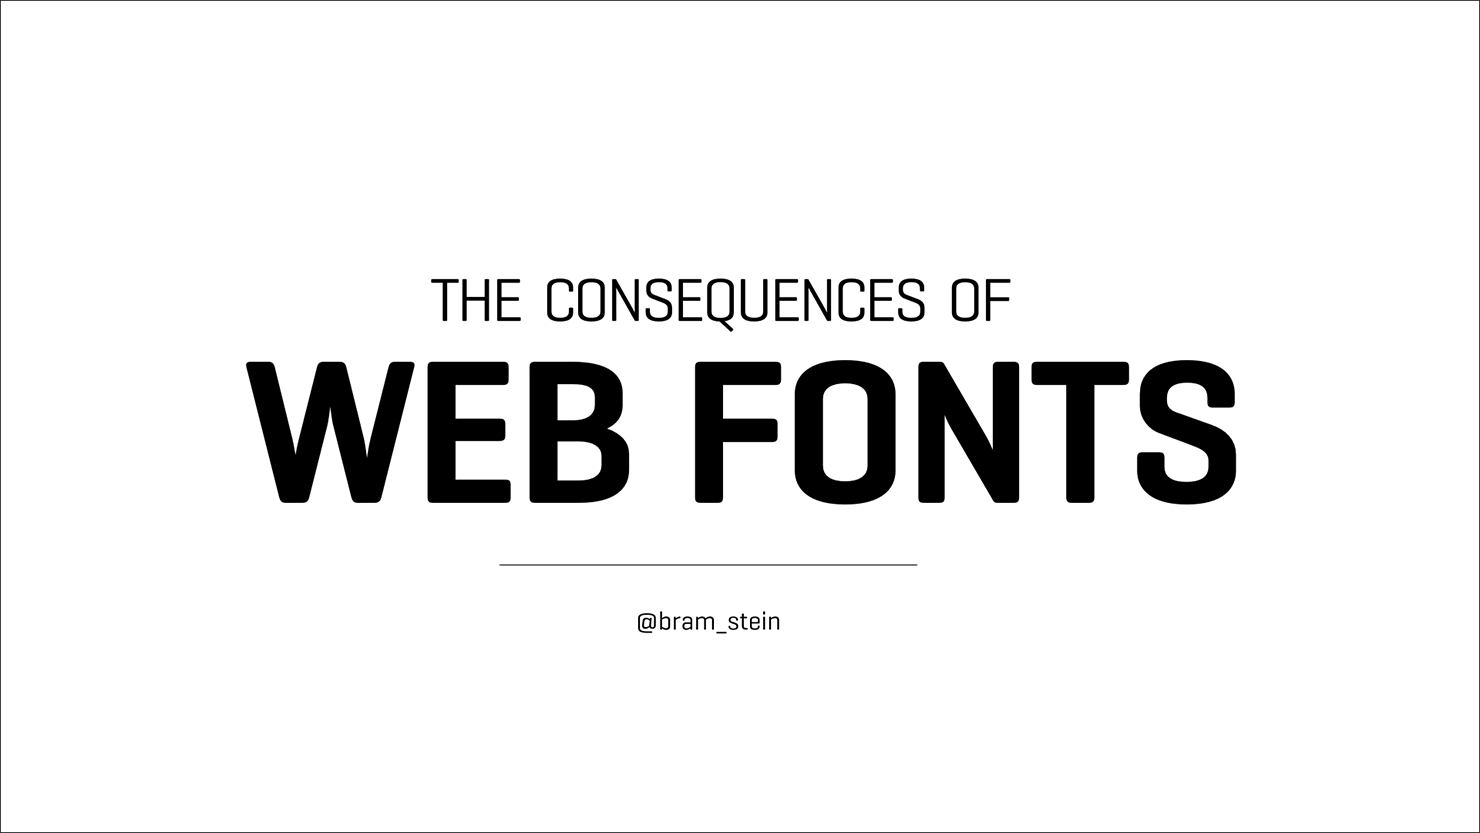 The Consequences of Web Fonts opening slide